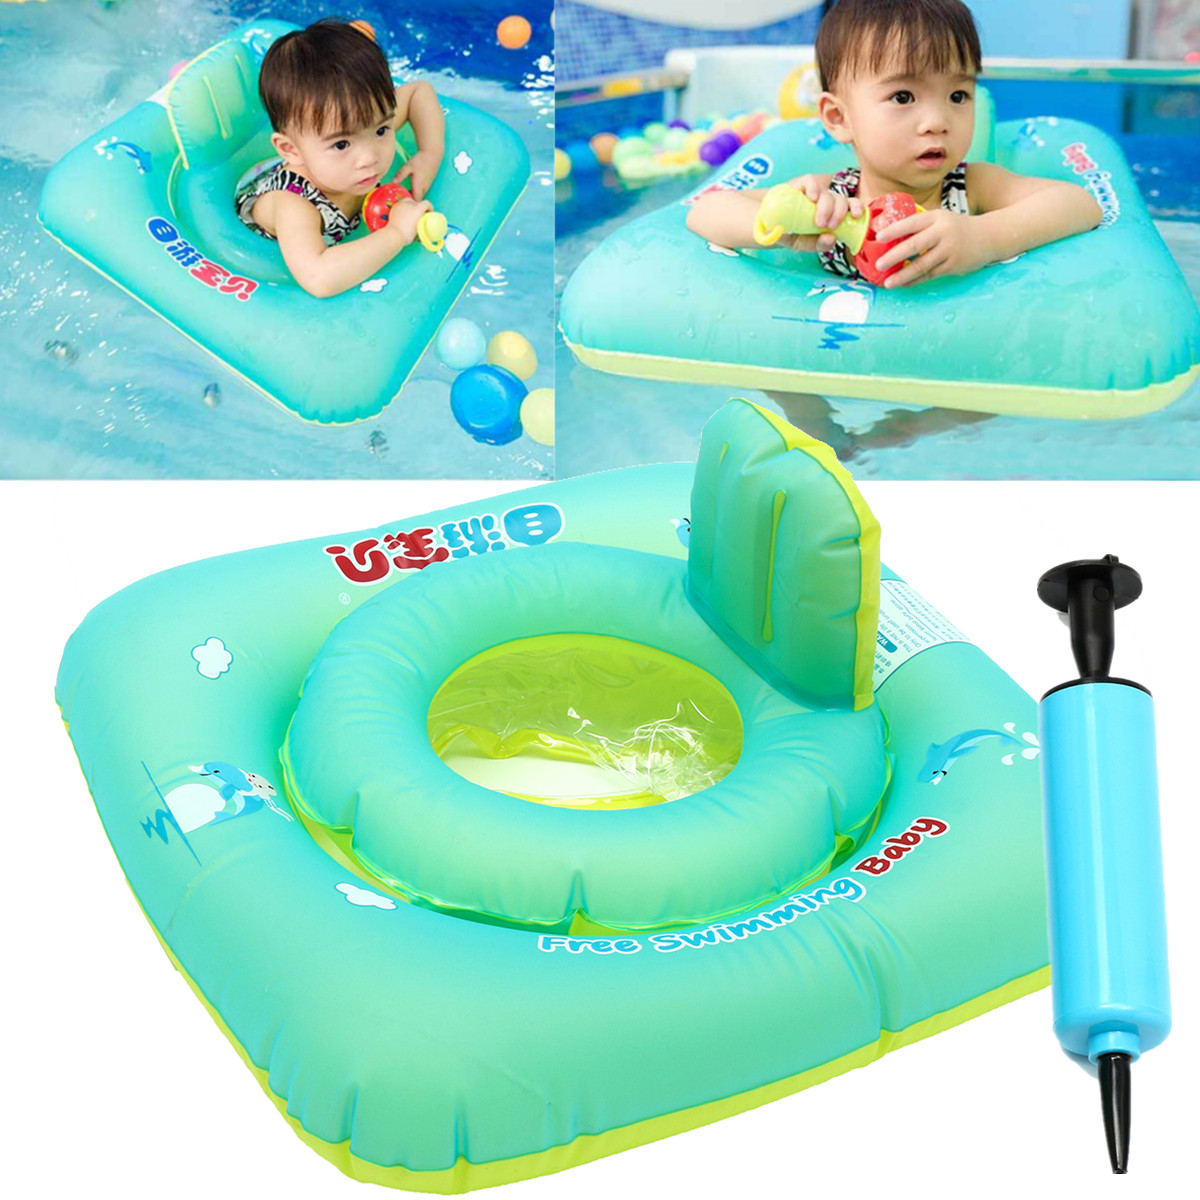 baby blow up ring chair best bean bag chairs for toddlers inflatable swimming pool floats swim ride rings